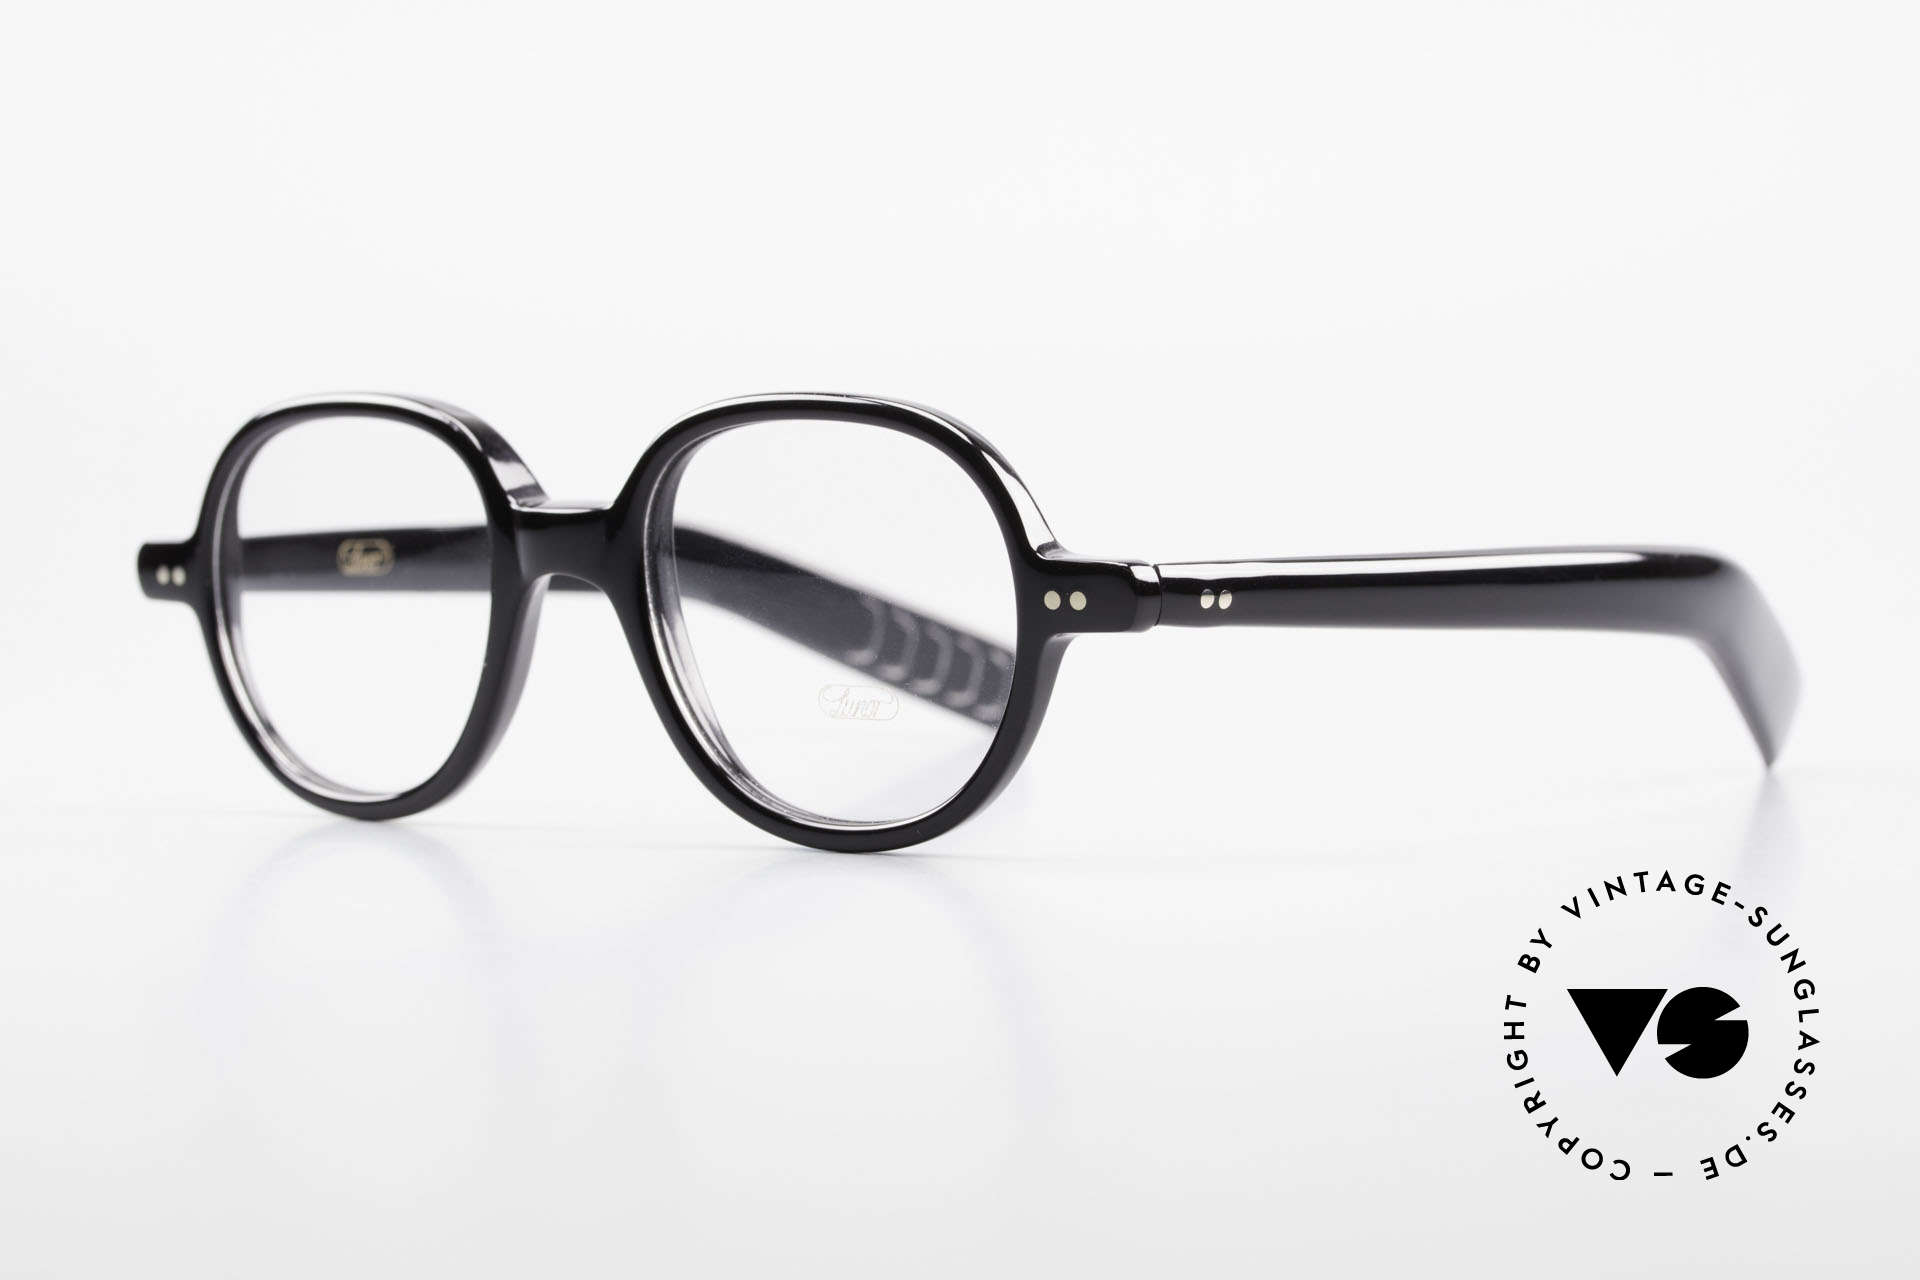 Lunor A50 Round Lunor Acetate Glasses, roundish frame with a classic black coloring, timeless!, Made for Men and Women